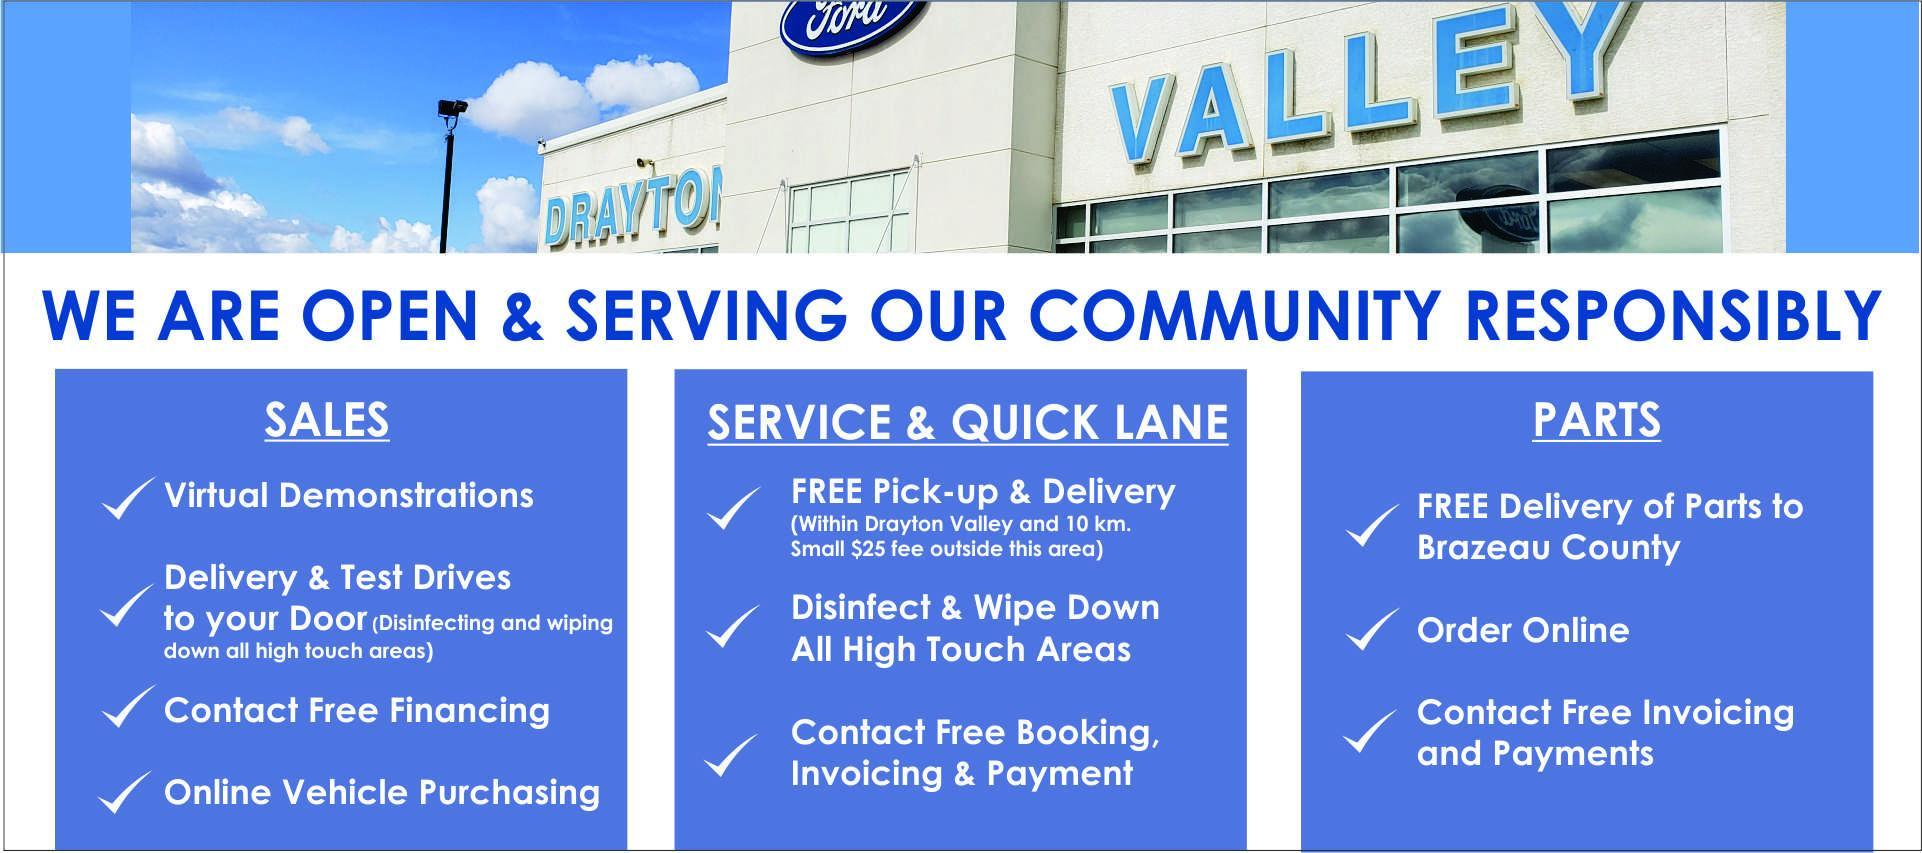 covid-19 services at drayton valley ford